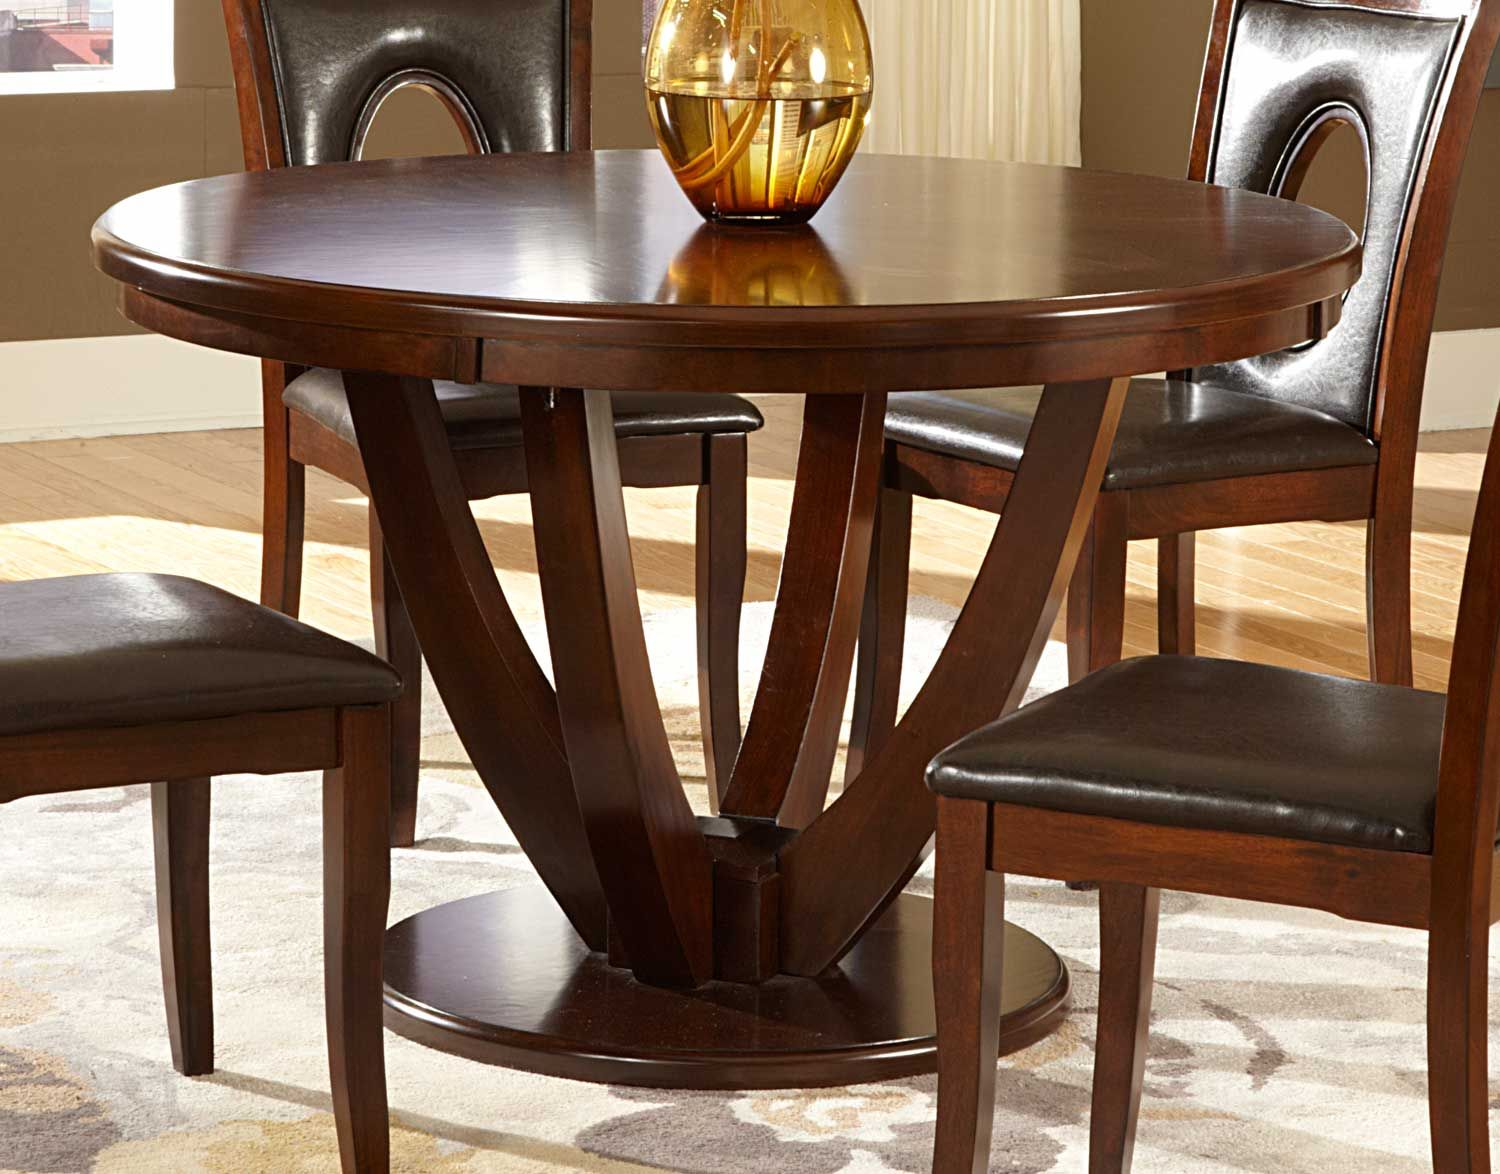 Homelegance Vanbure Round Dining Table Cherry With Images